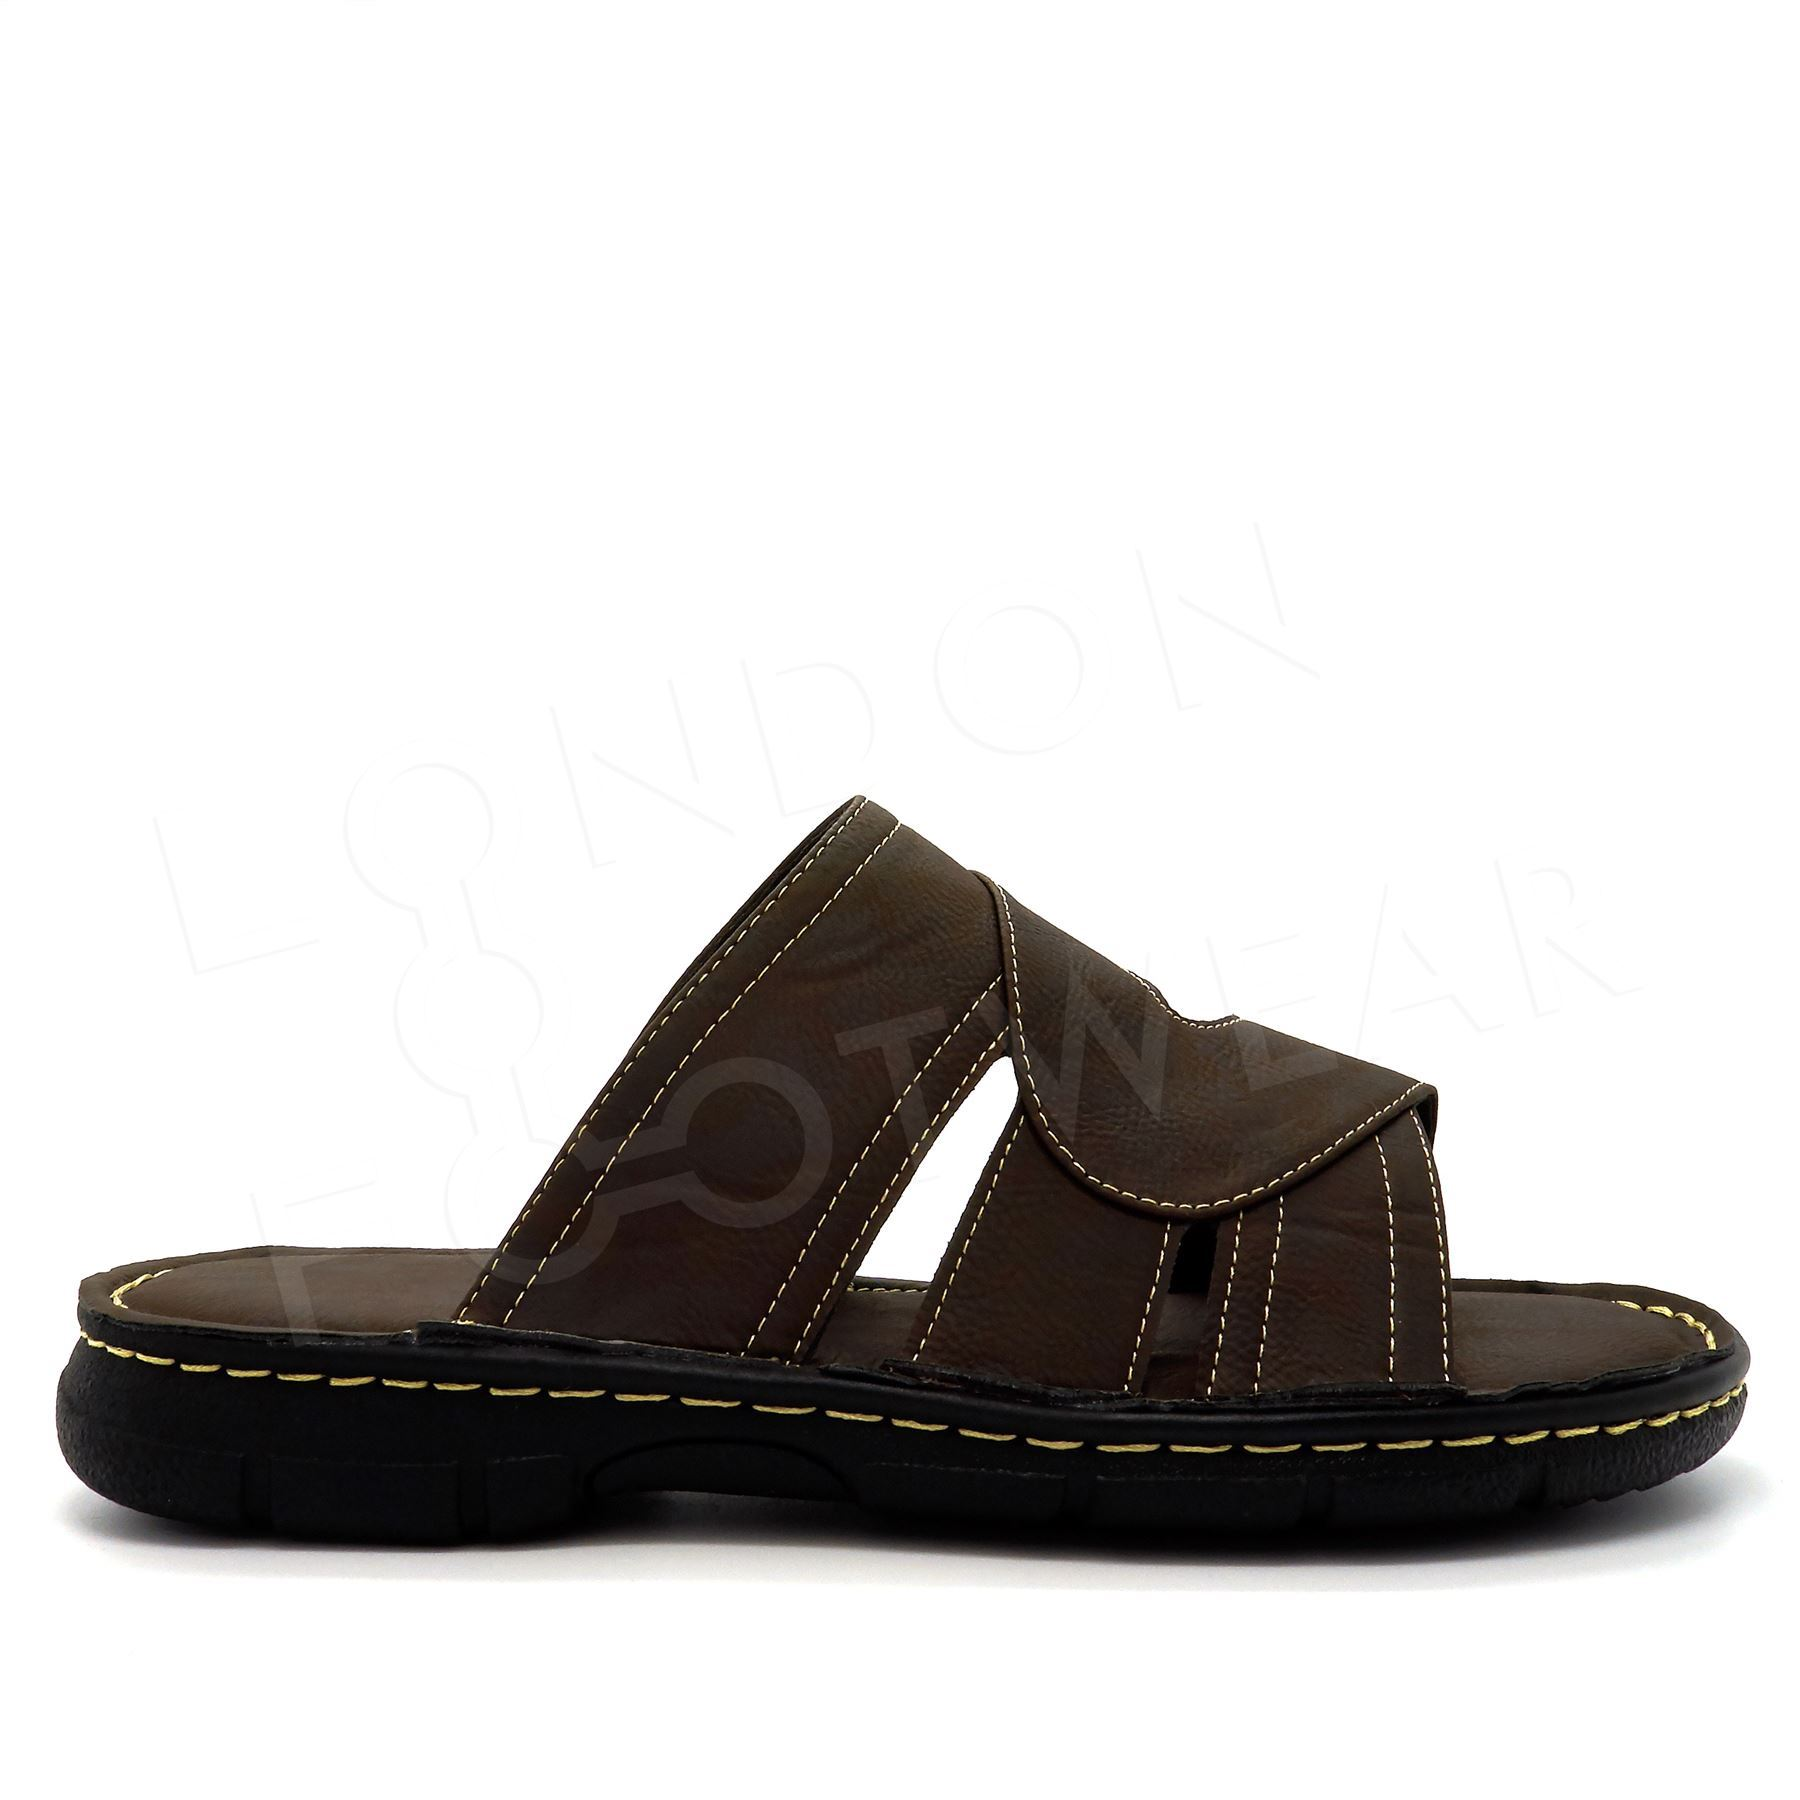 mens summer comfort walking sandals slip on mules